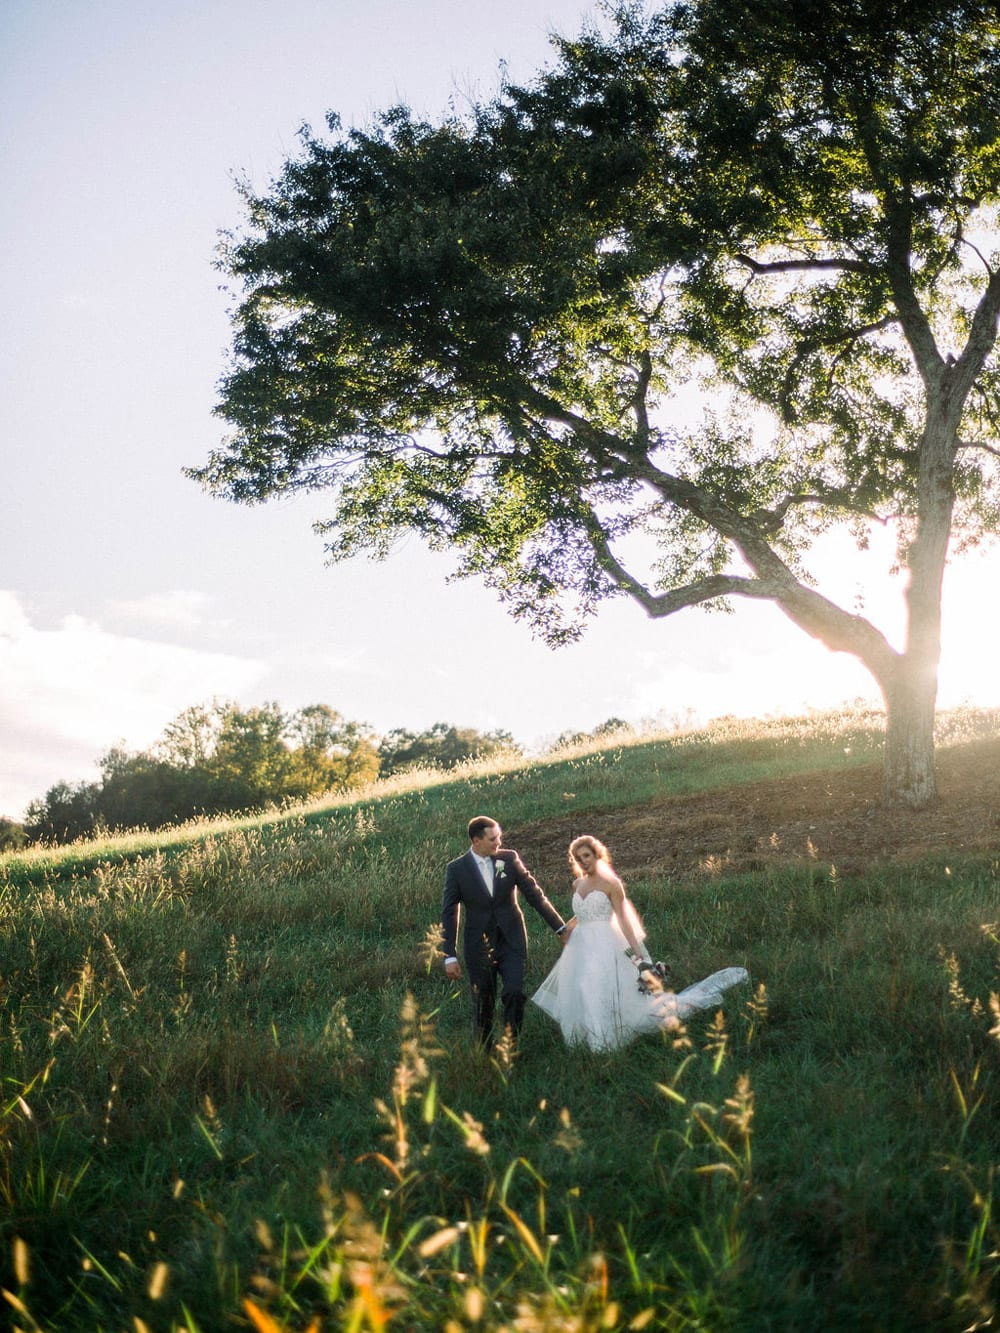 Bride and groom walk along the pasture by tree